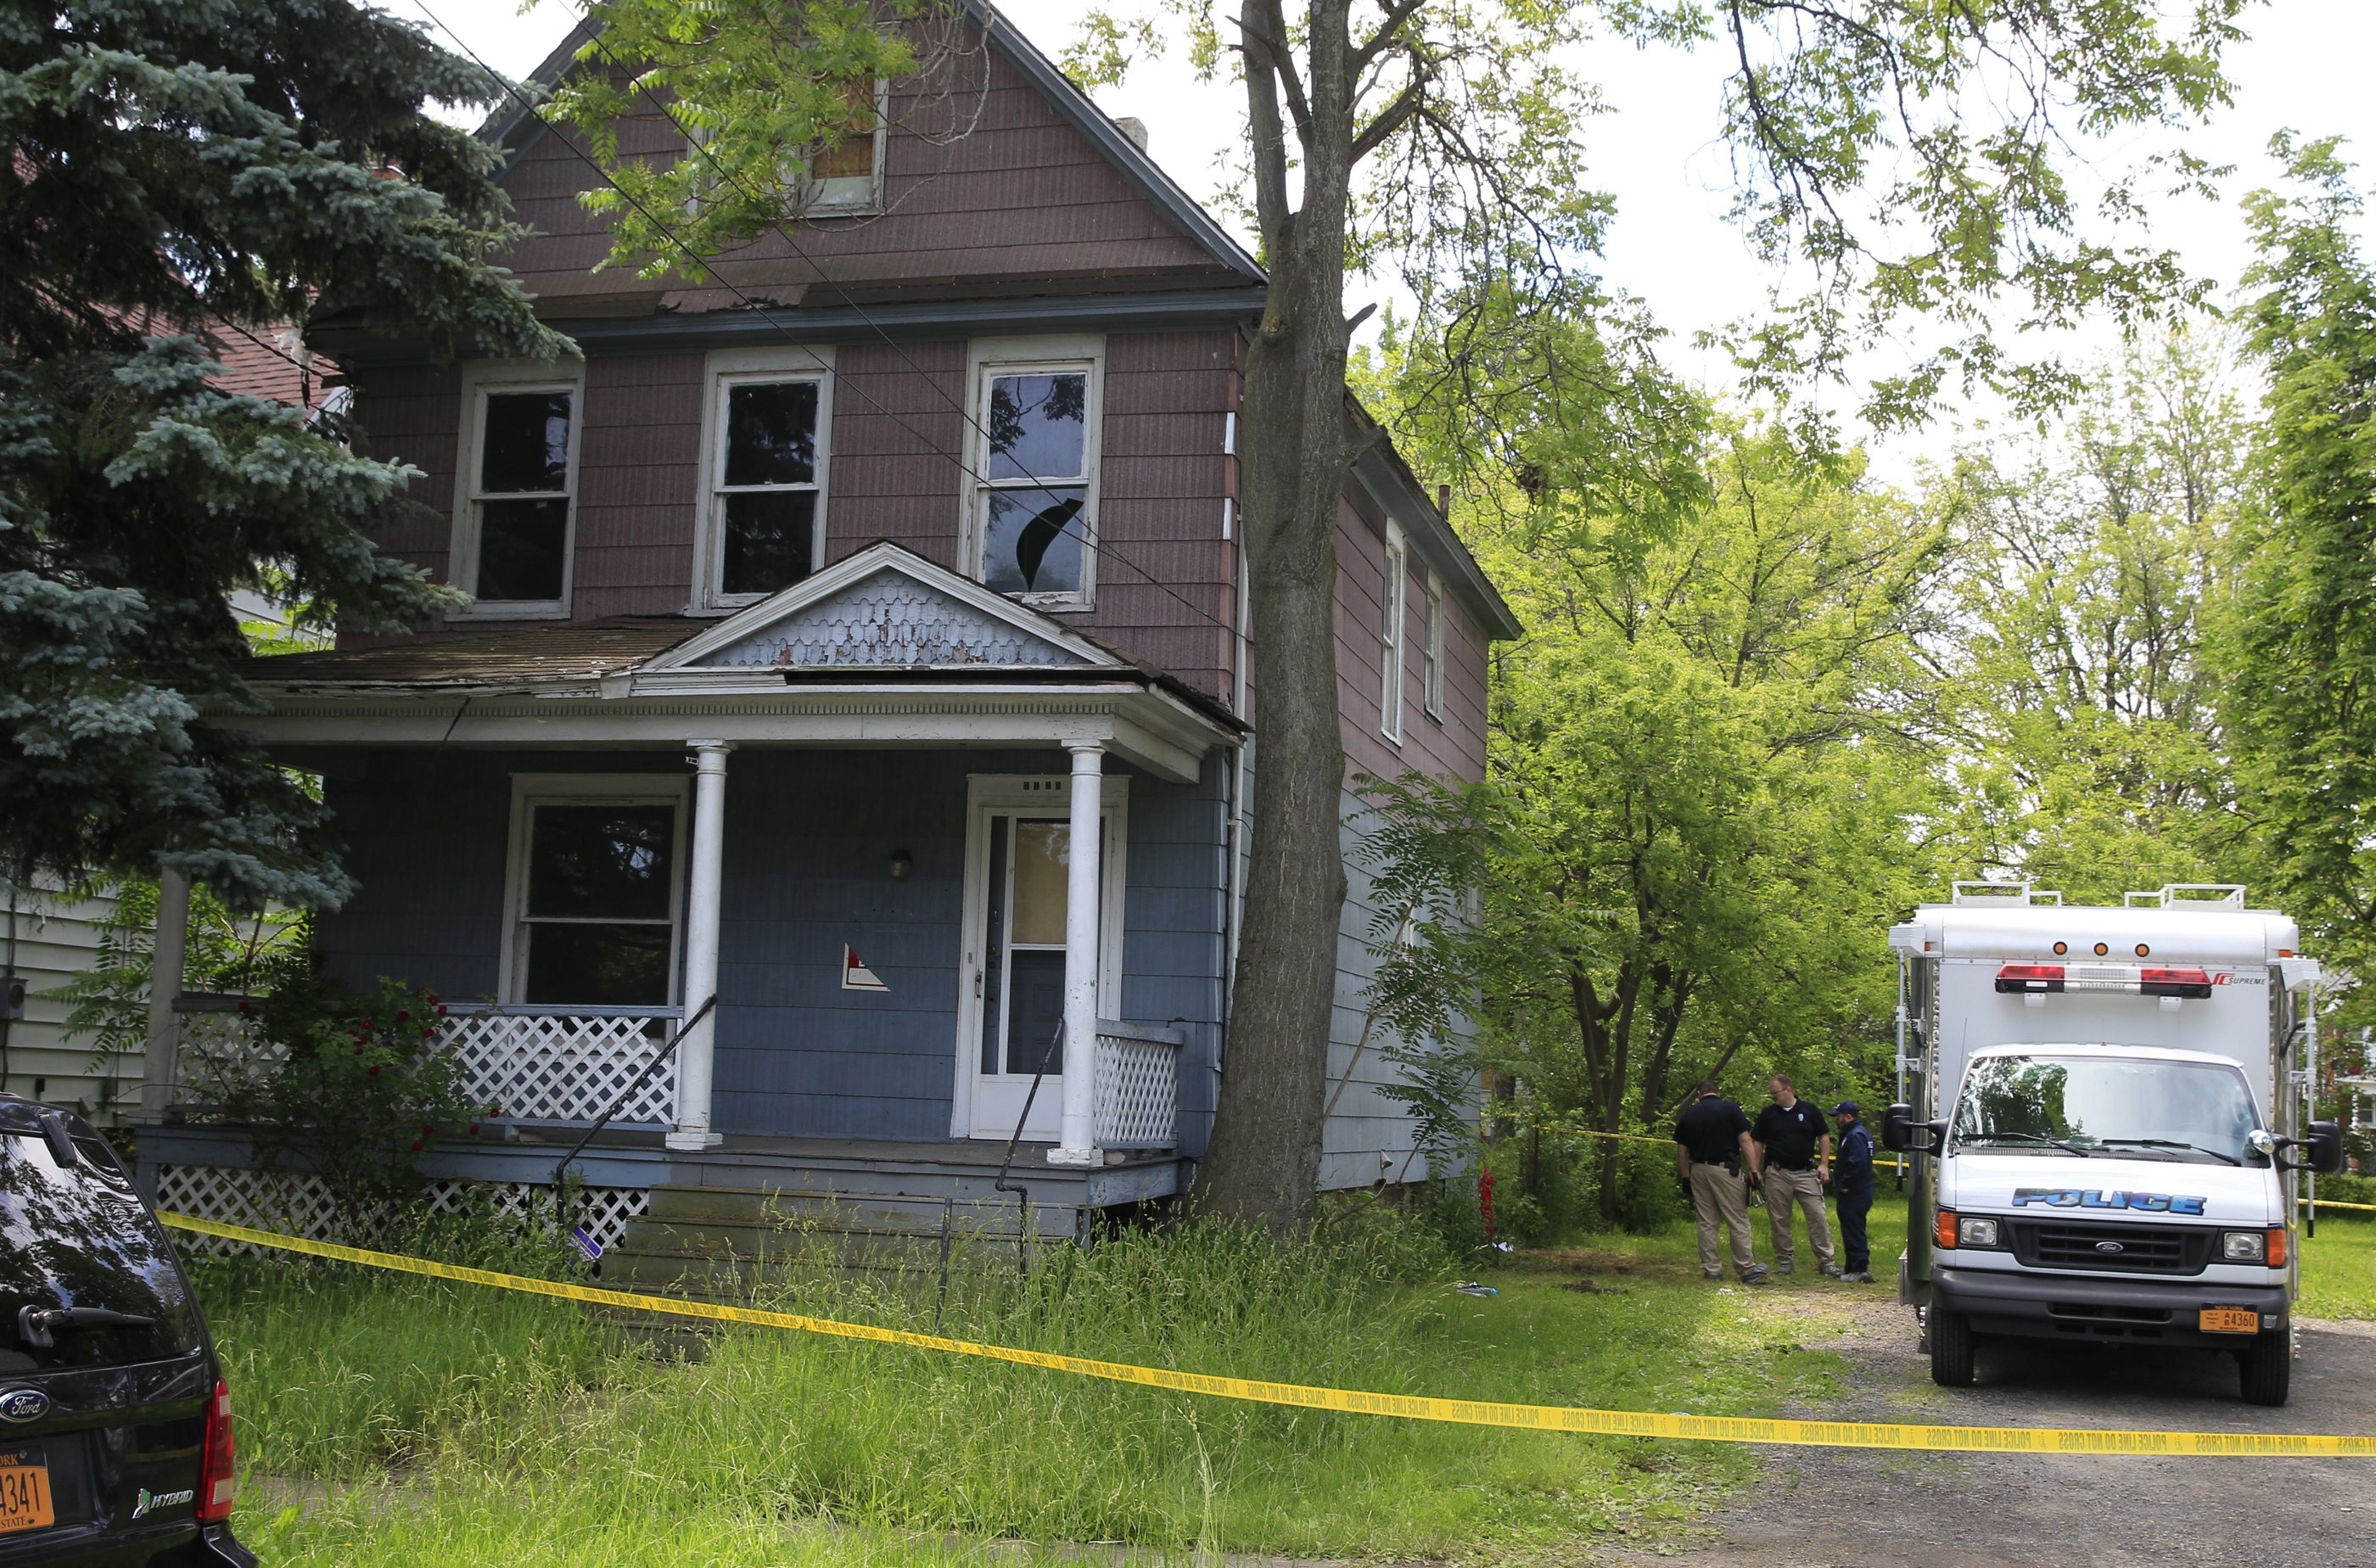 Police crime scene investigators talk at abandoned home at 1129 Willow Ave. in Niagara Falls, where body was found.